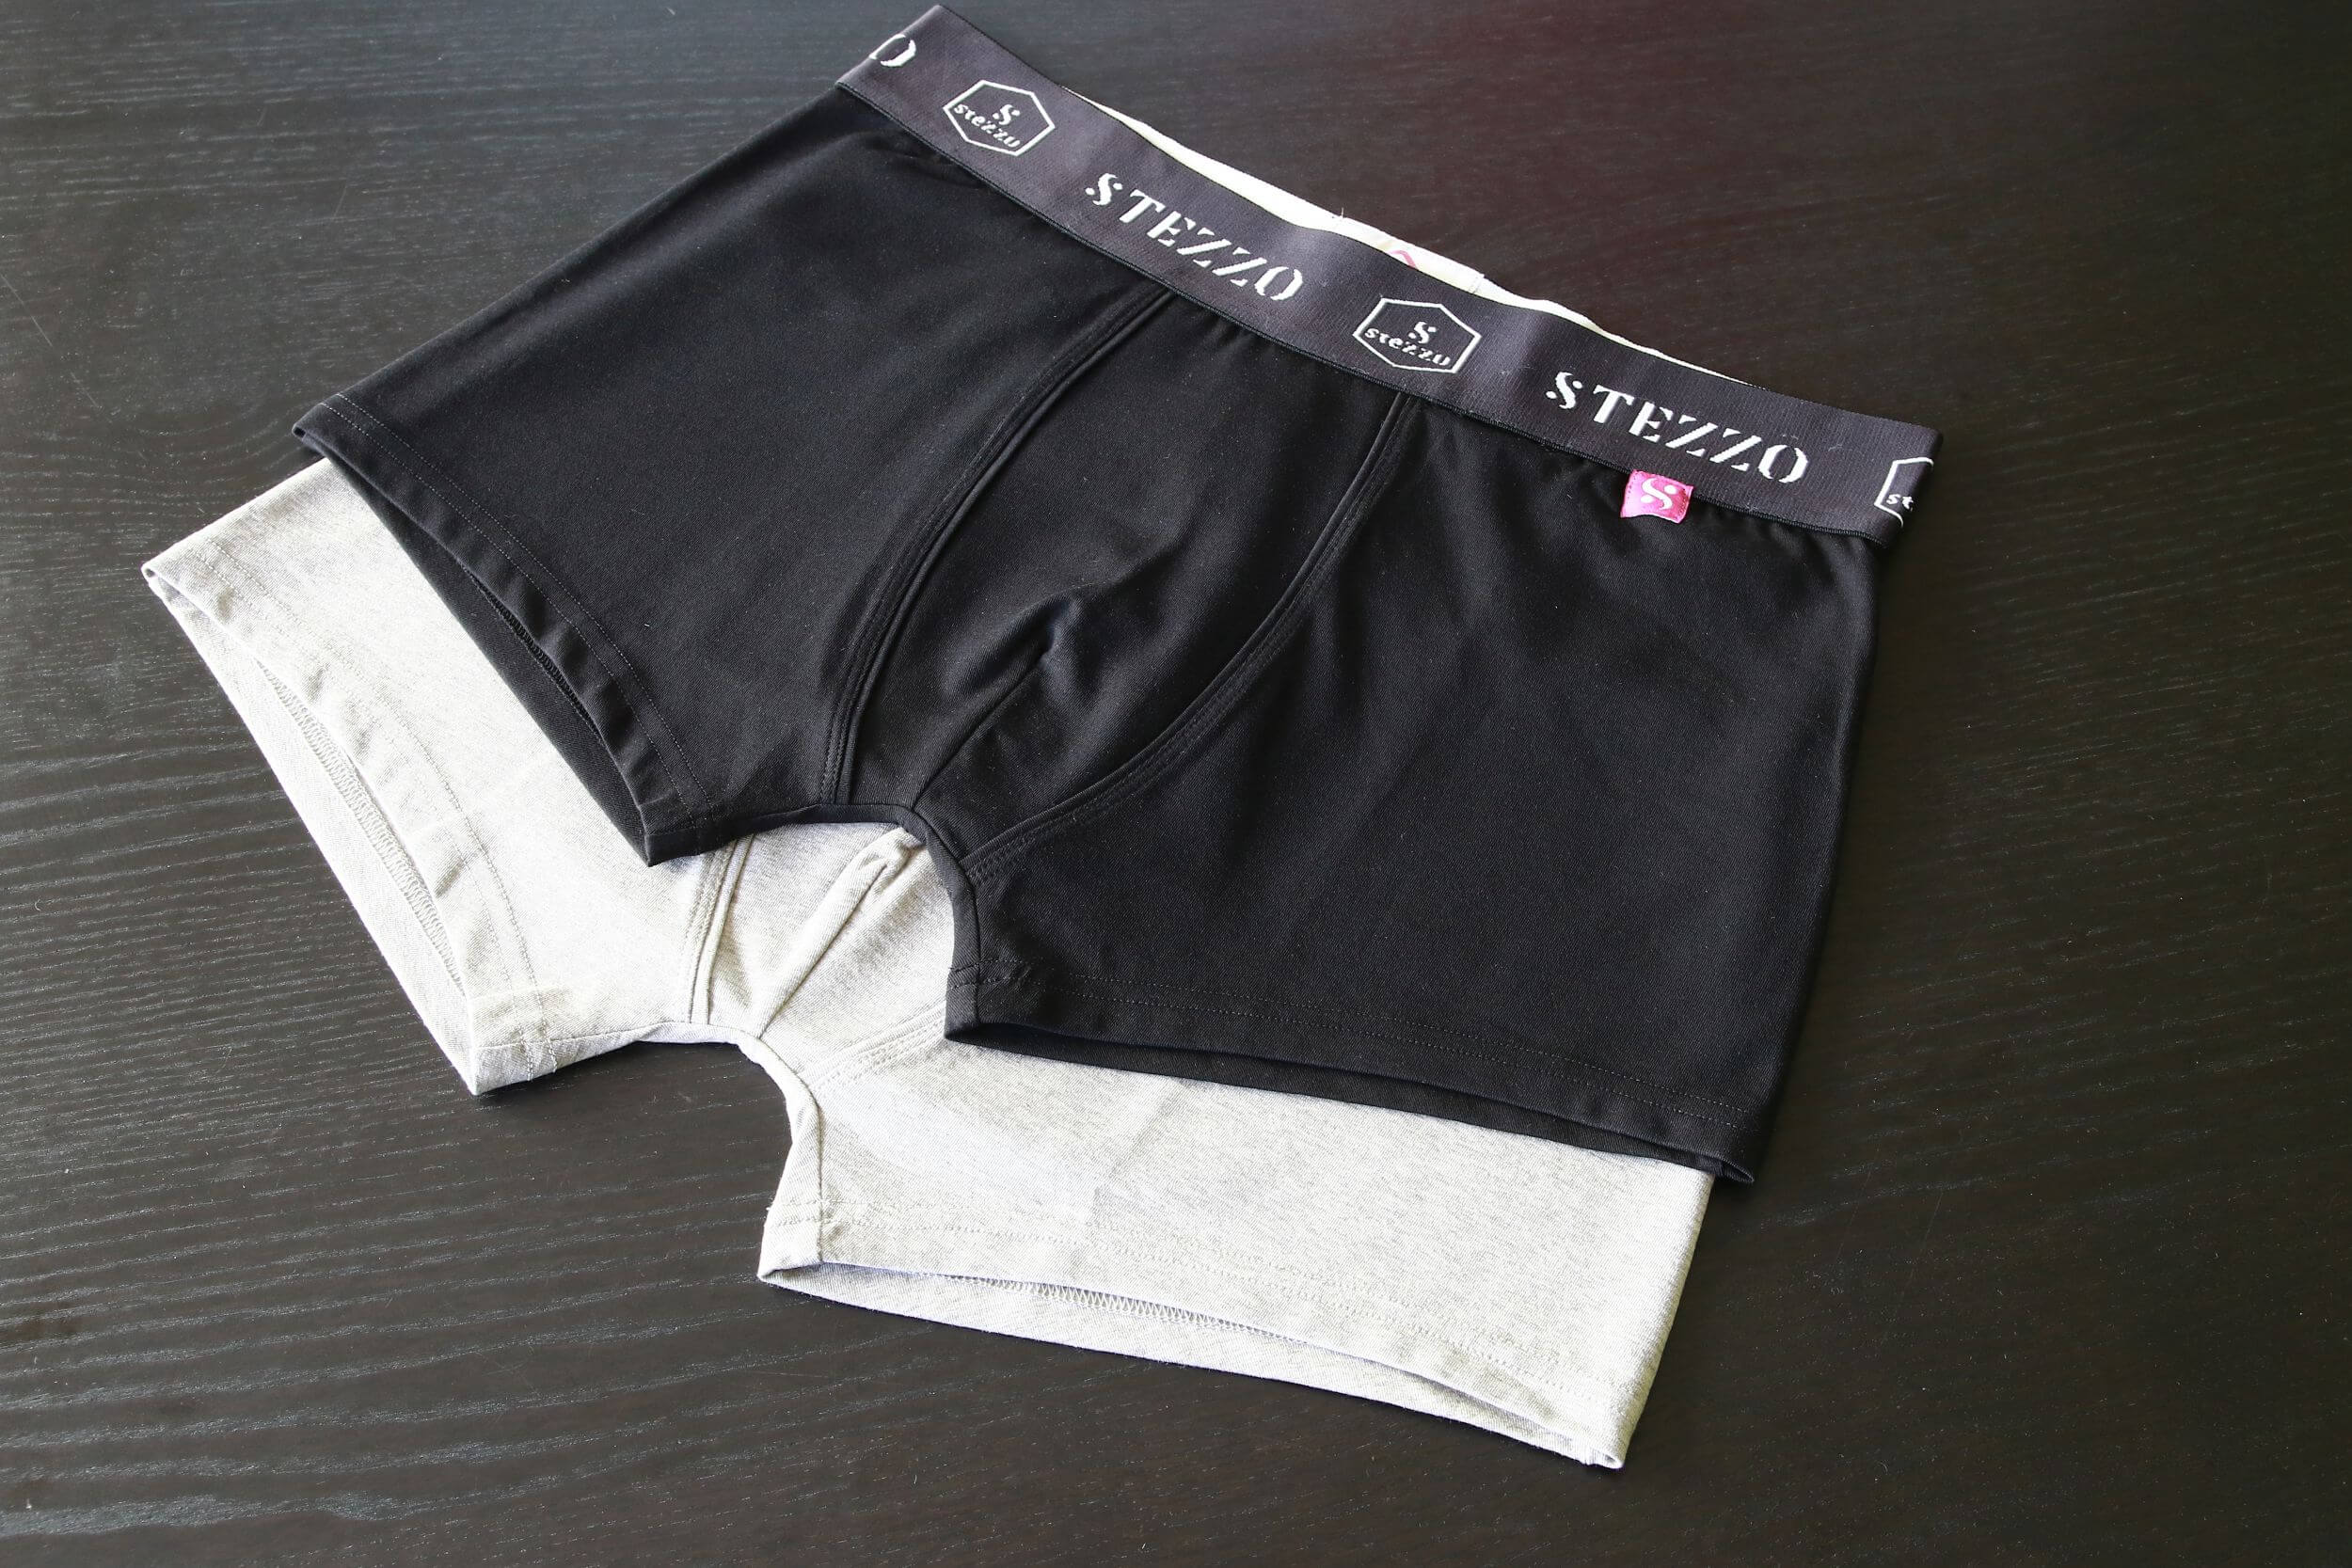 Stezzo Men's Underwear | Pack 2 Boxers 2